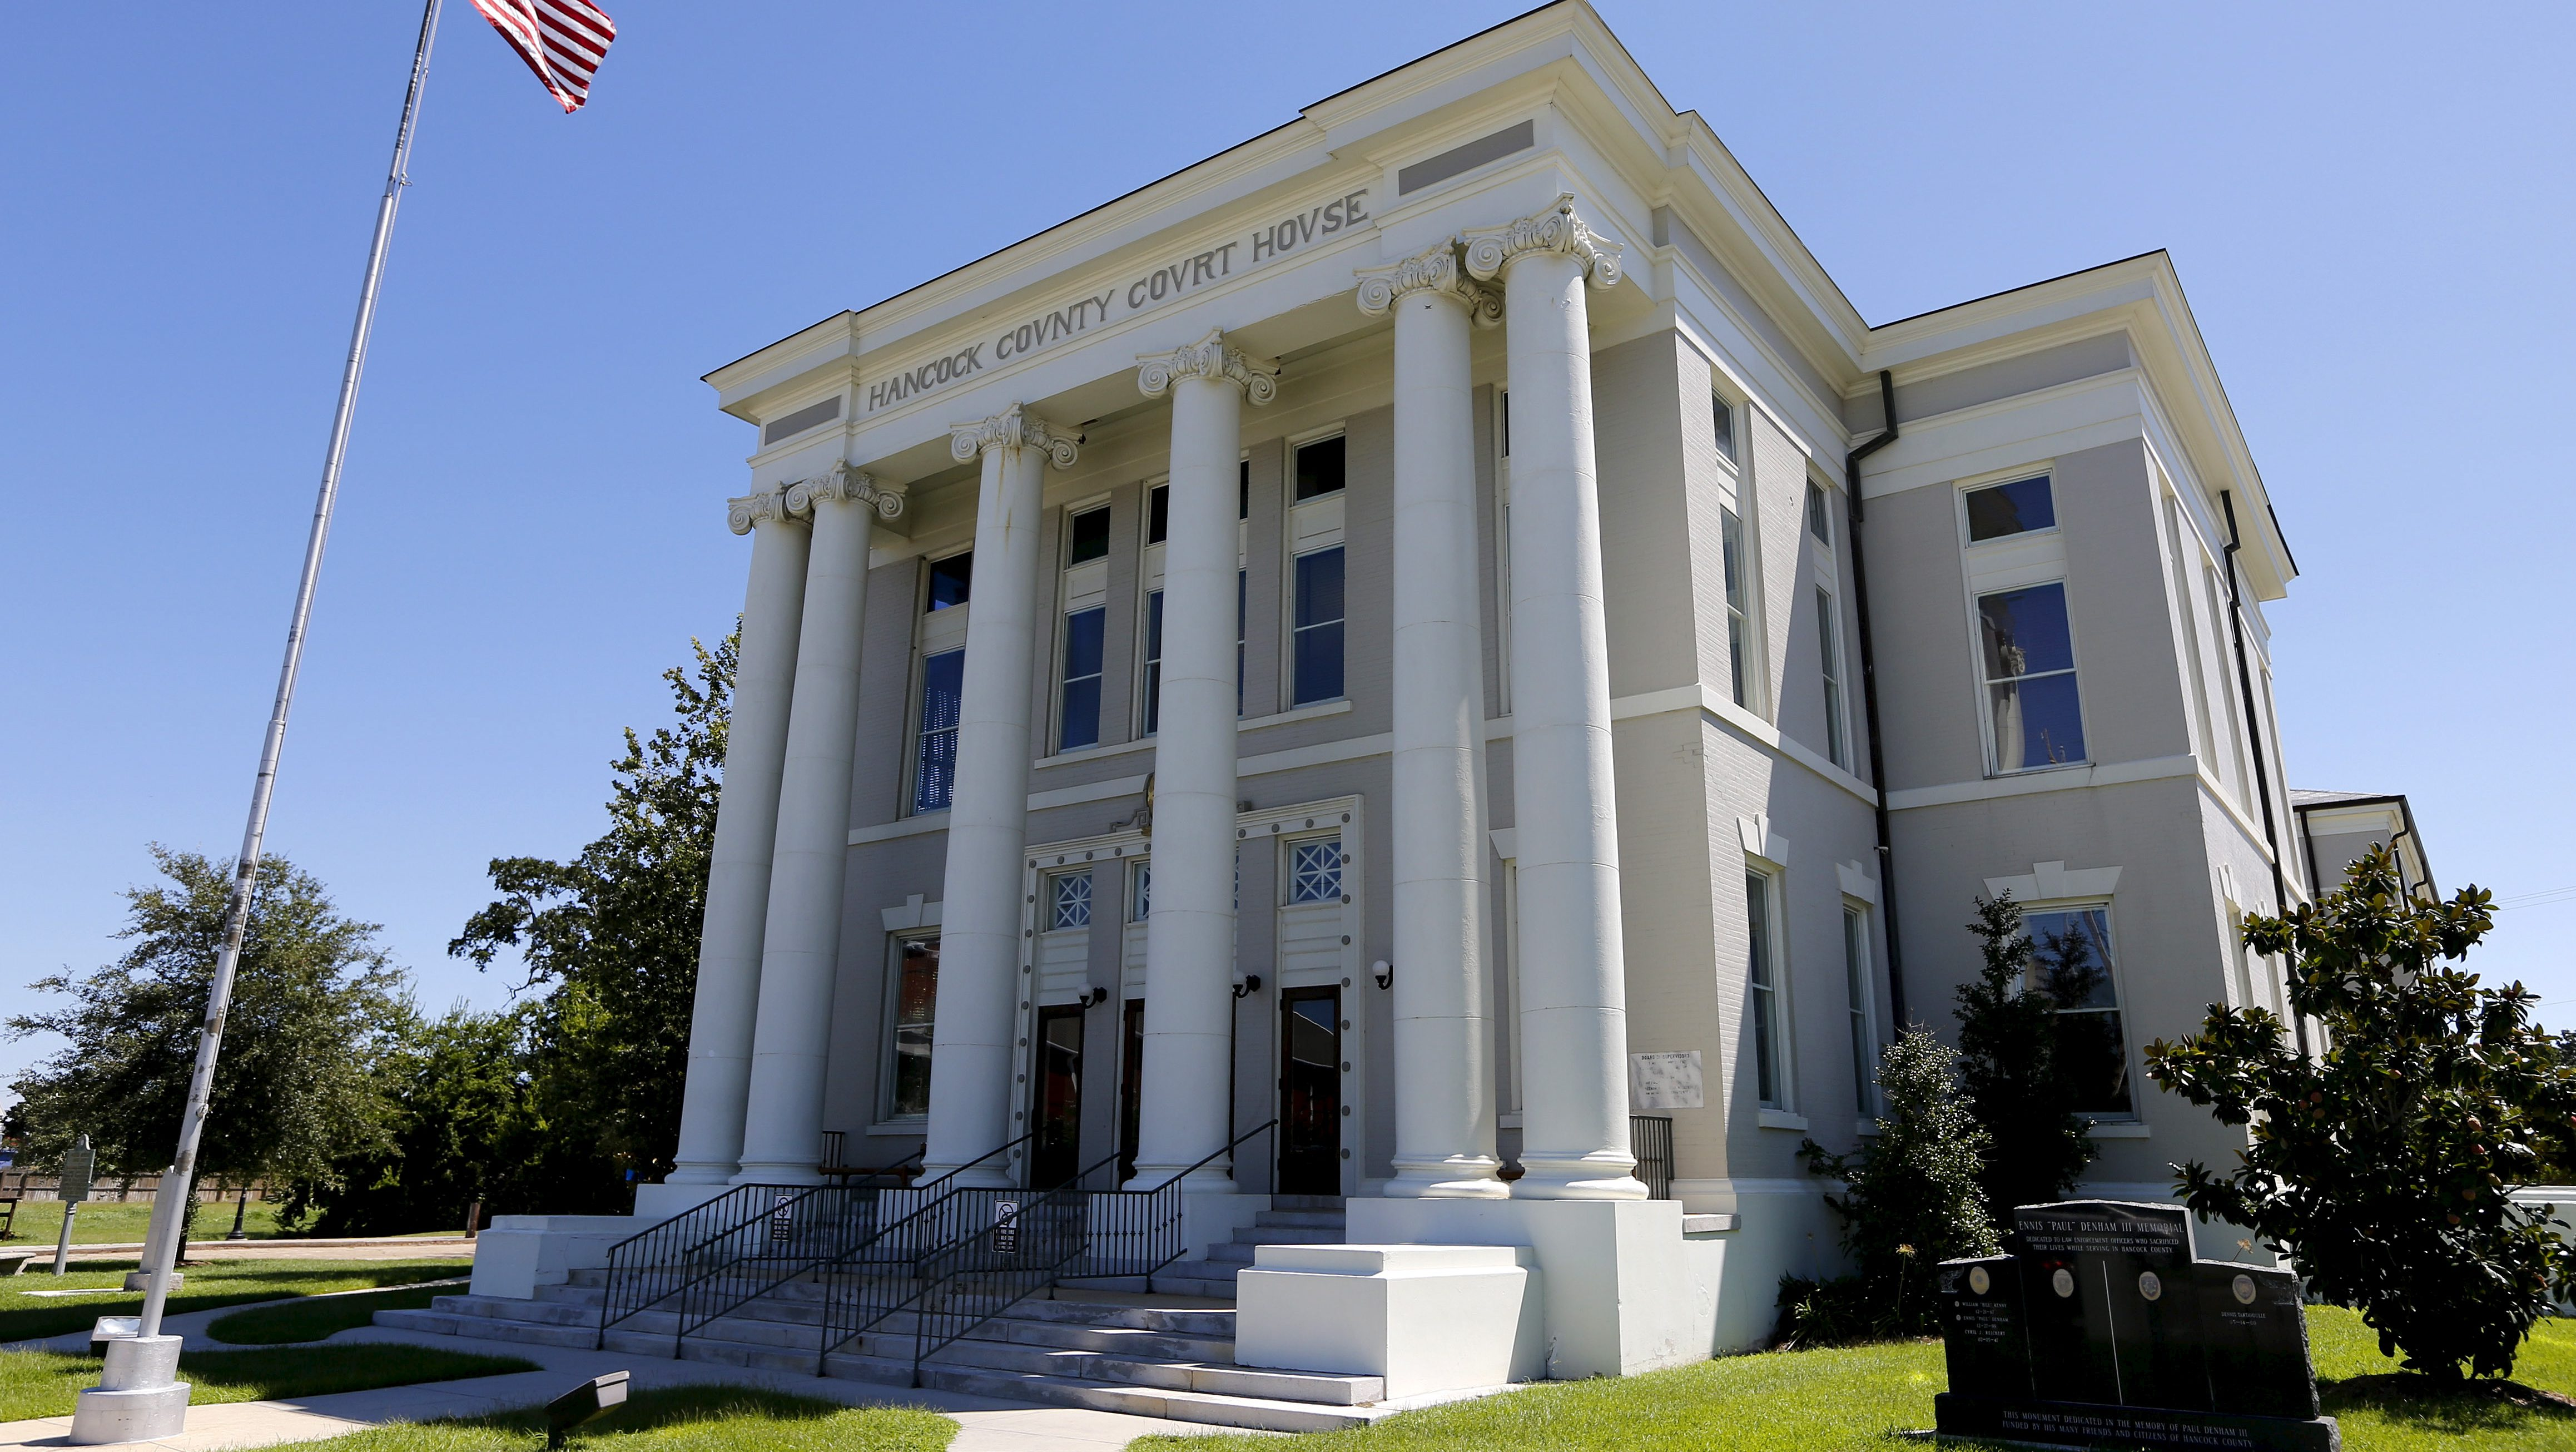 The Hancock County court house is pictured in Bay St. Louis, Mississippi, August 26, 2015. Ten years ago this week, the eye of Hurricane Katrina ripped through Pass Christian and Bay St. Louis, which face each other across a small bay 60 miles (97 km) east of New Orleans. The storm, the costliest disaster of its kind in U.S. history, caused some of the worst damage in the region here, leaving few buildings standing, killing dozens and forcing thousands to flee. The appearance now is one of impressive regeneration, thanks in part to government grants that helped these towns and others nearby recover more quickly than some urban areas of New Orleans. But behind the fresh white paint of the city buildings and the growing optimism, there are signs of persistent difficulties for these picturesque towns, which can no longer rely on government grants. Picture taken August 26, 2015.     REUTERS/Jonathan Bachman - RTX1Q1NA